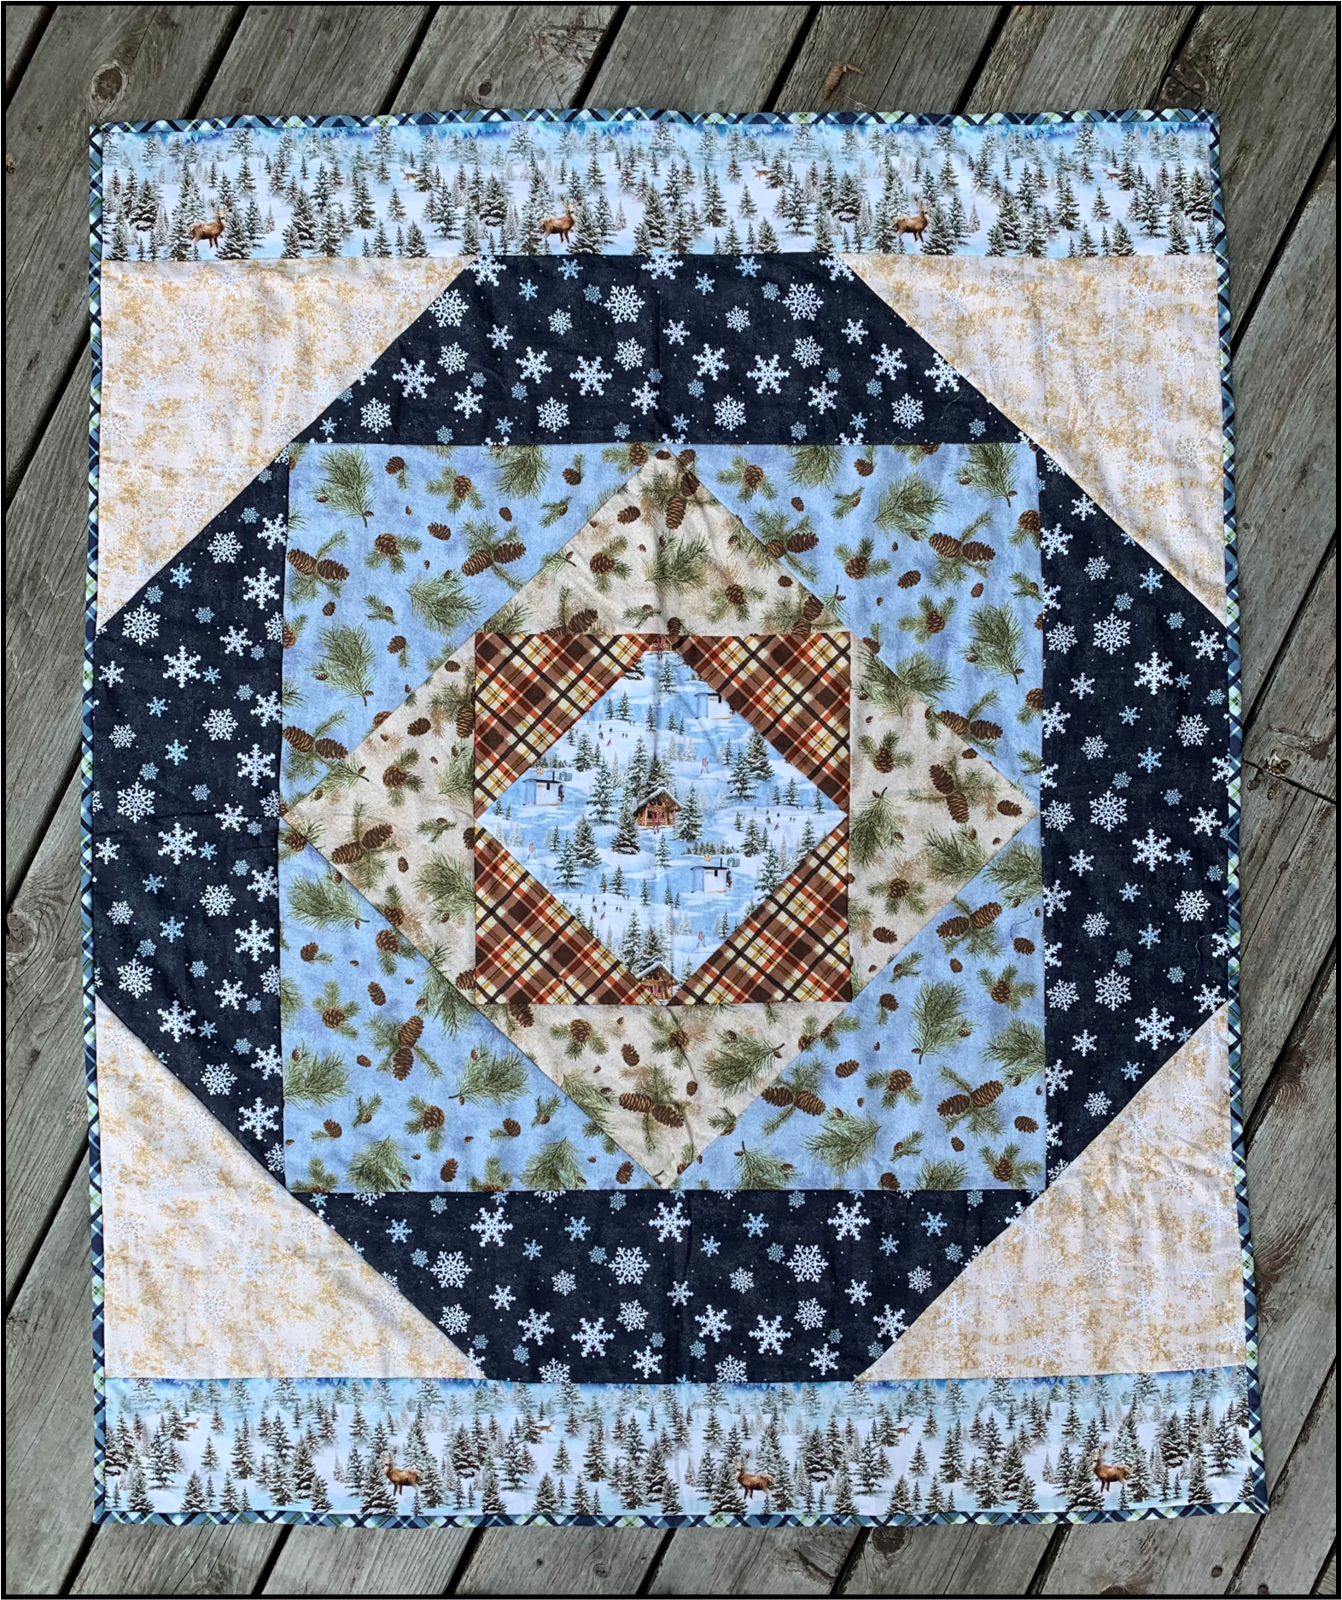 Quilt As You Go- Square in a Square Quilt Minnesota 2021 Kit